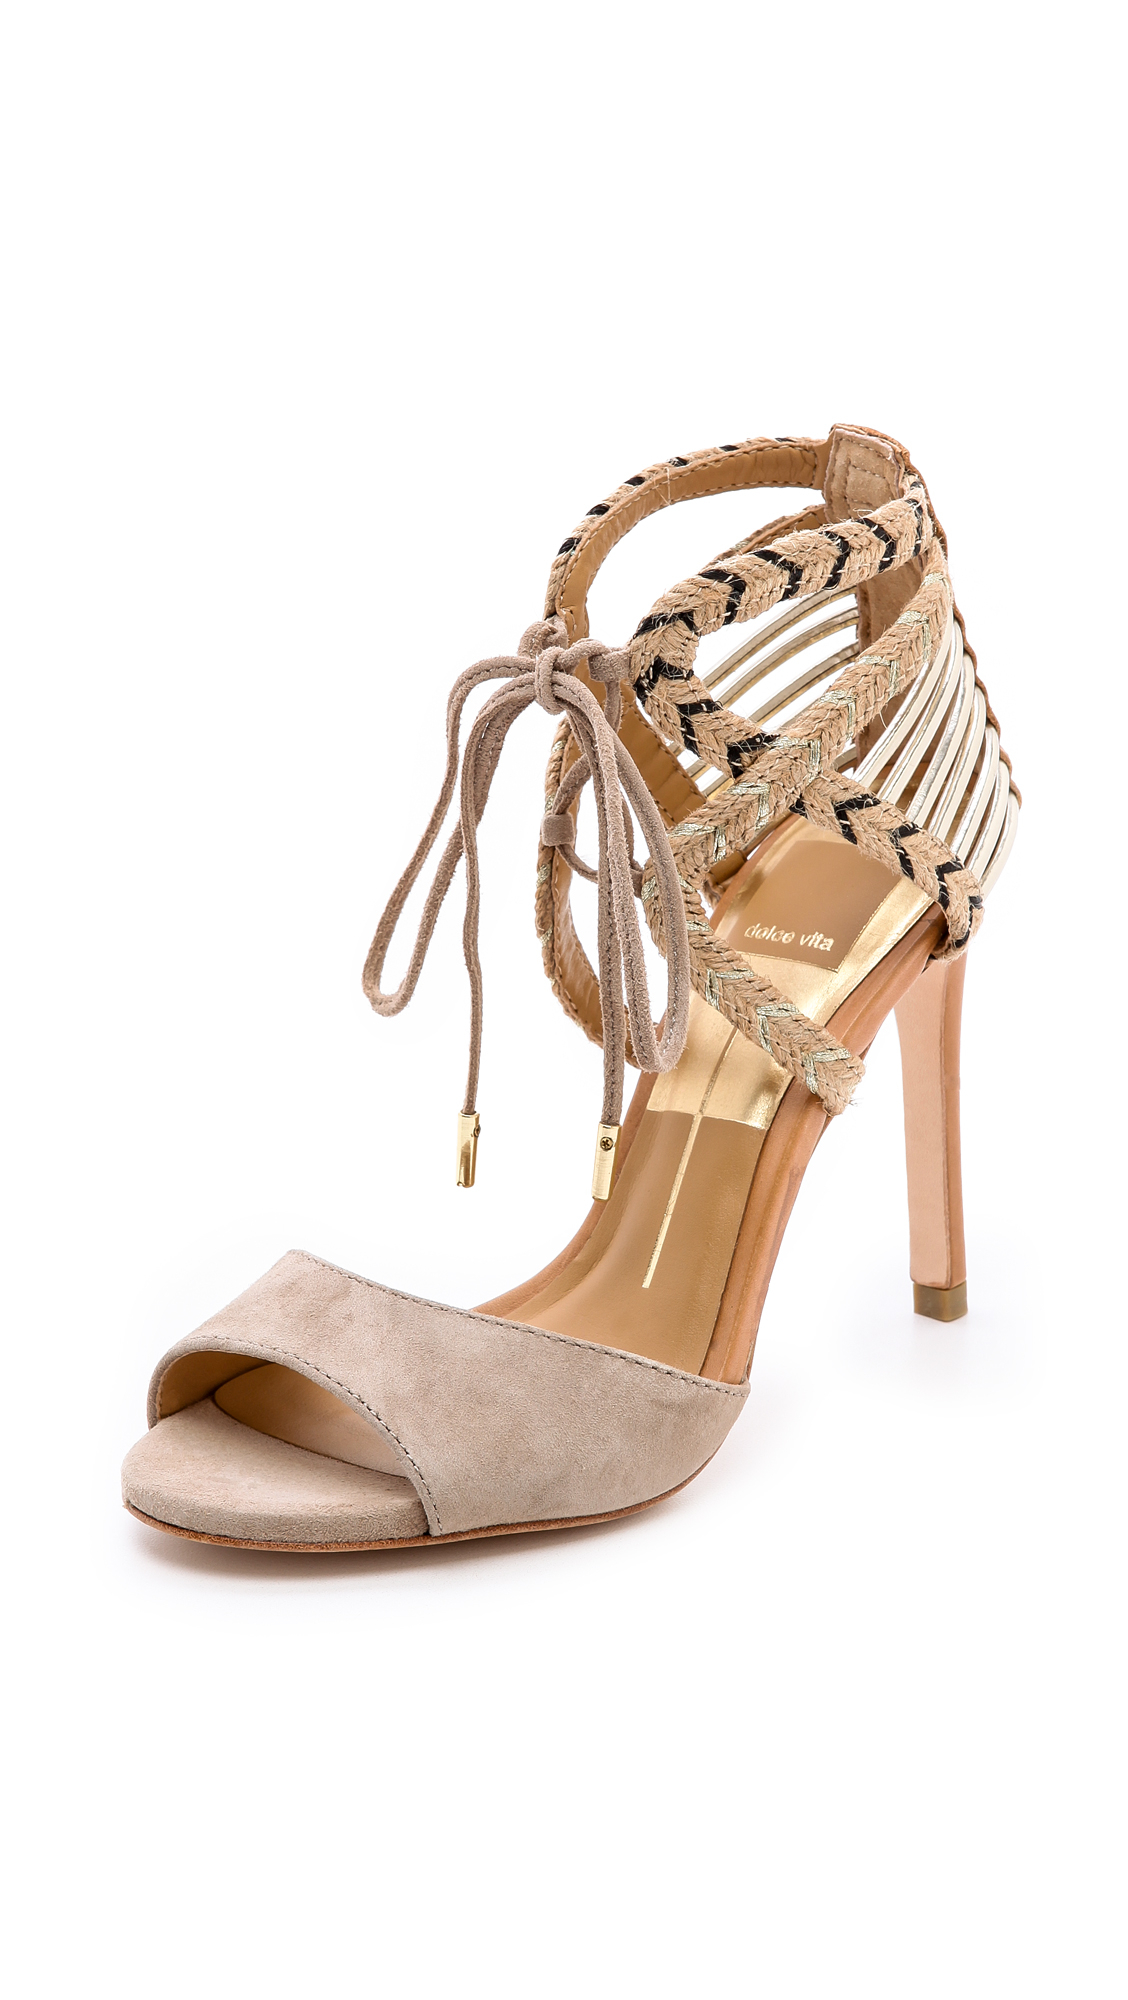 Dolce Vita Womens Bagley Sandal in Nude (Natural) - Lyst